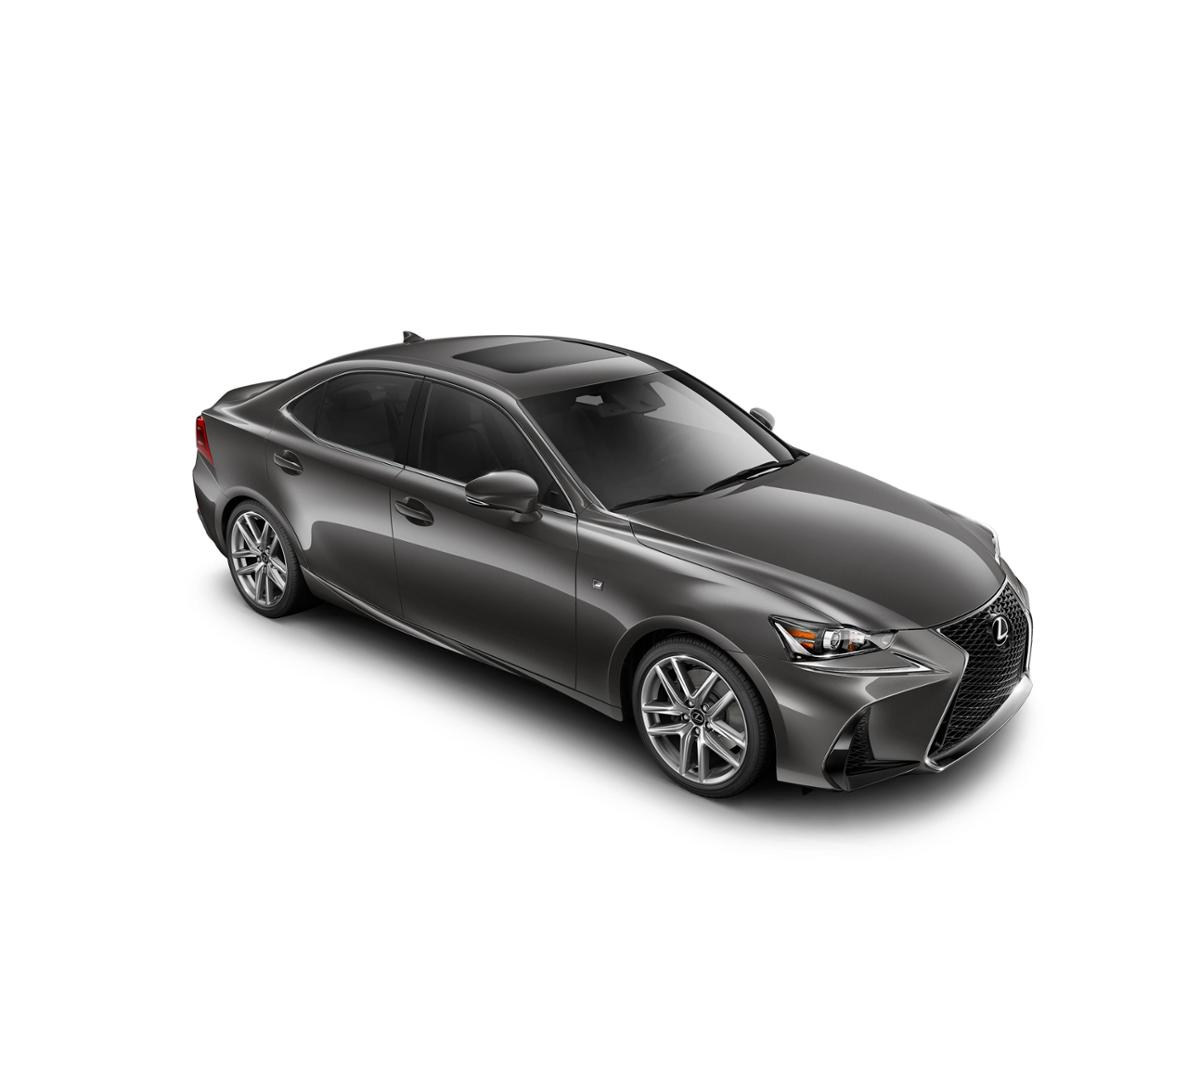 new nebula gray pearl 2018 lexus is 350 f sport for sale fremont ca magnussen lexus of. Black Bedroom Furniture Sets. Home Design Ideas